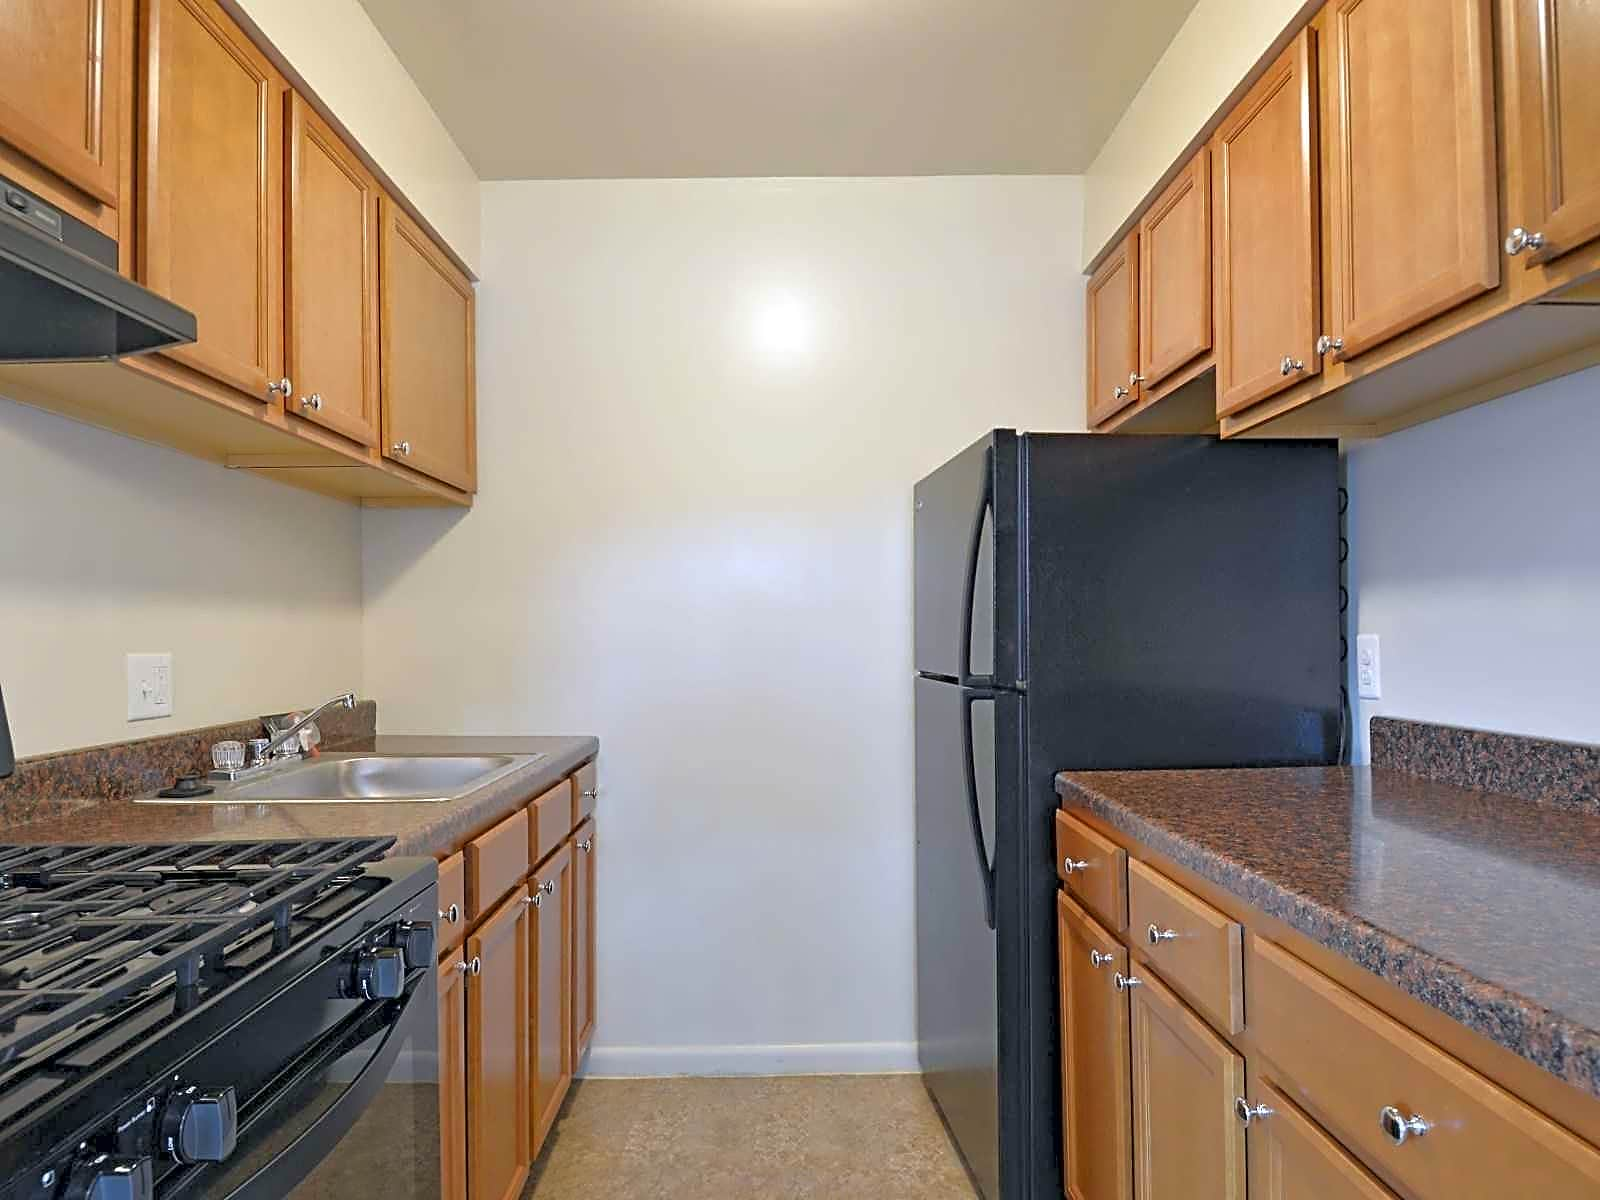 Apartments Near Dickinson Carlwynne & Hanover Manor for Dickinson College Students in Carlisle, PA